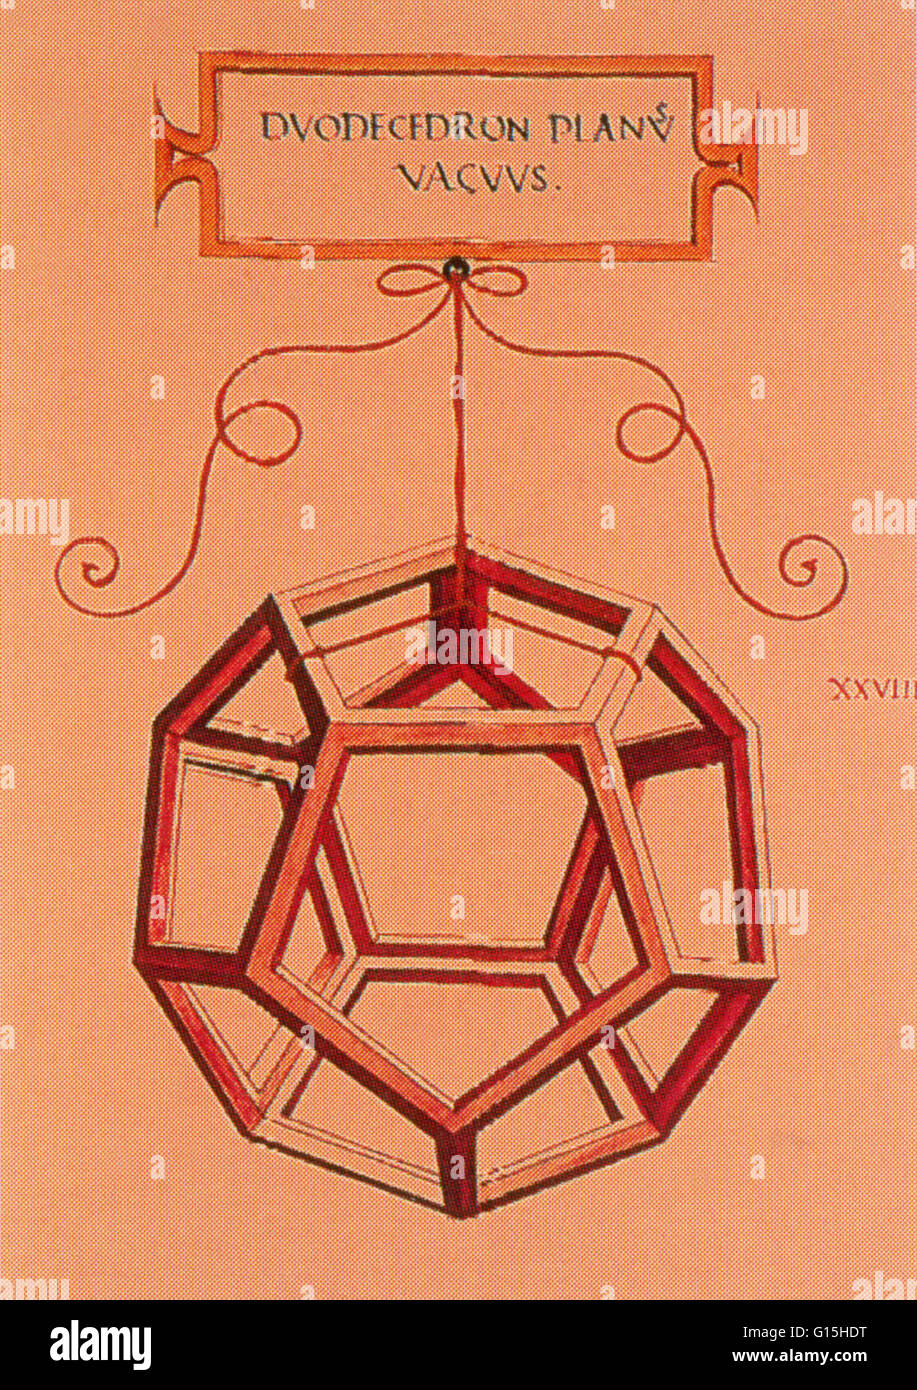 An Illustration Of A Dodecahedron The Platonic Symbol Of The Cosmos